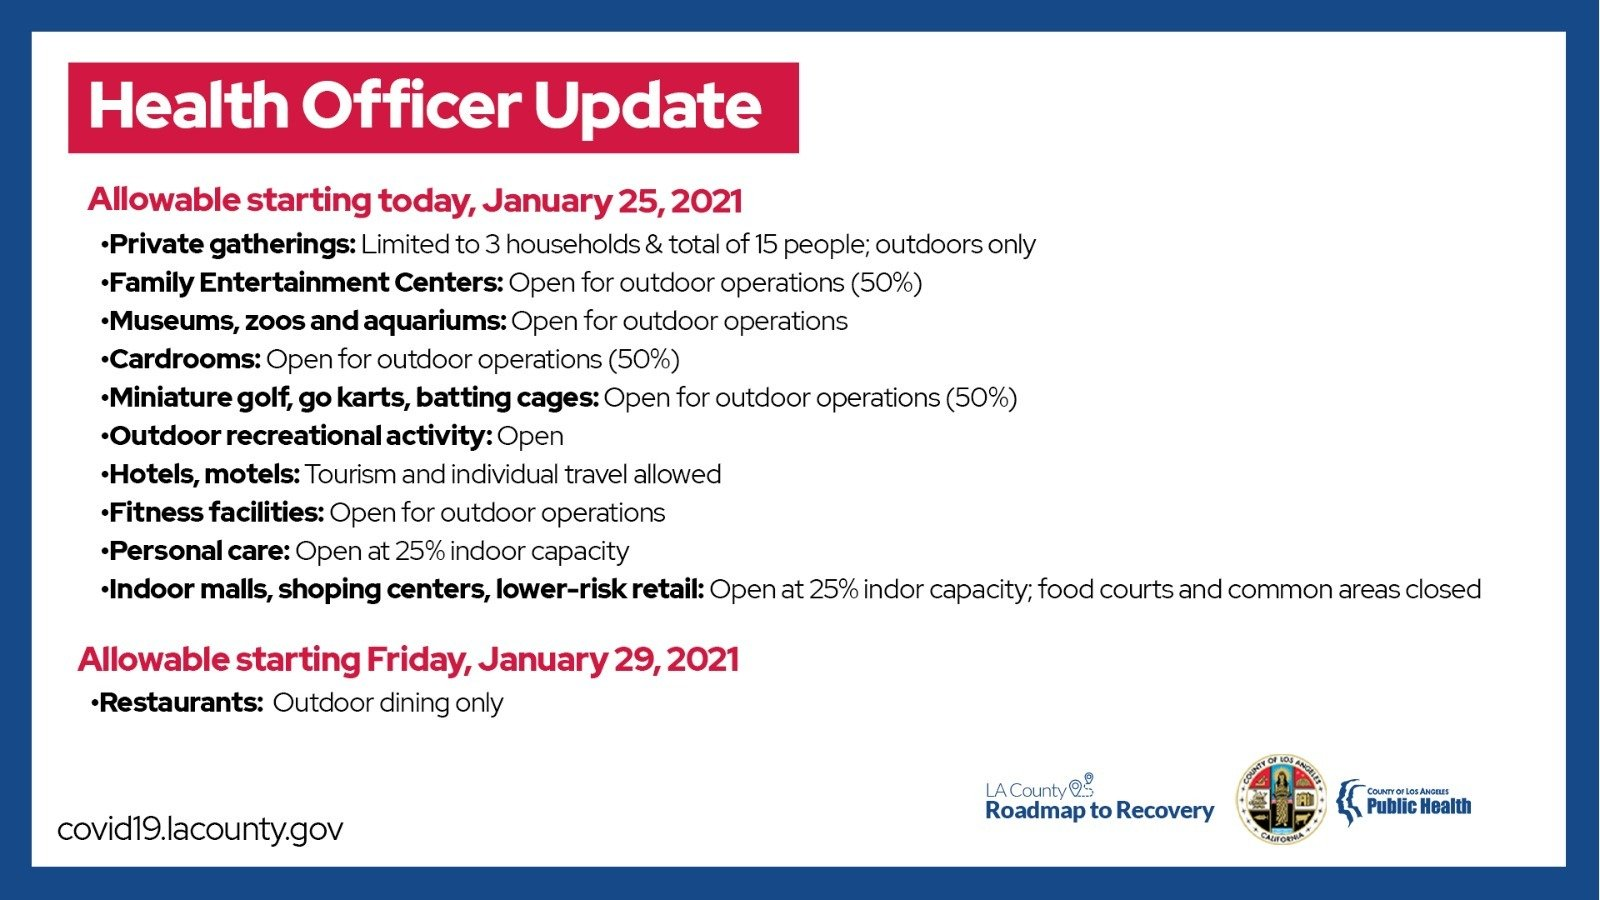 Health Officer Update From LA County